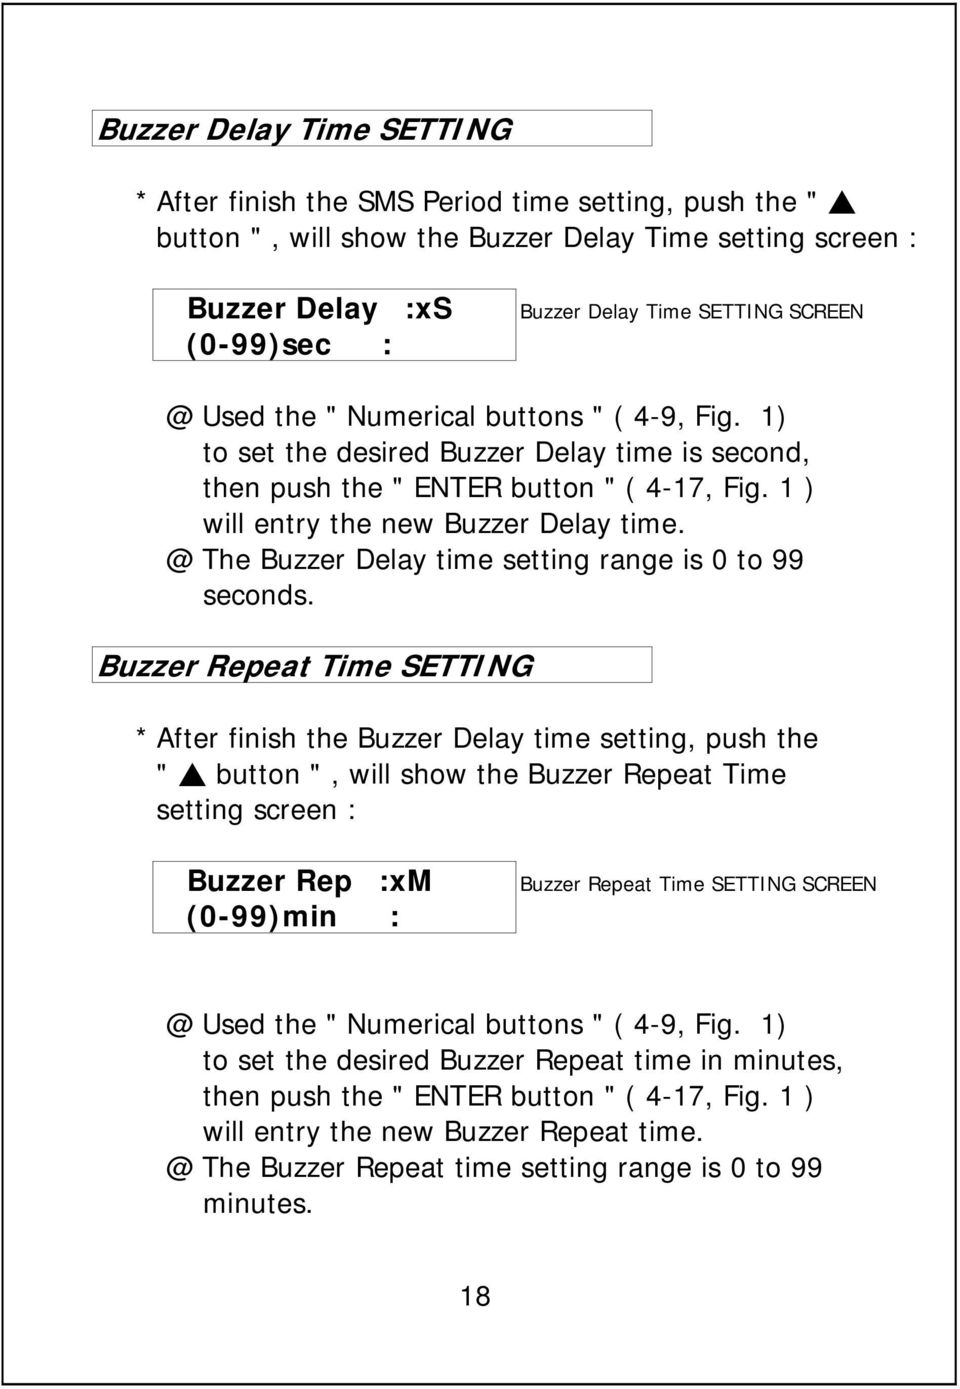 @ The Buzzer Delay time setting range is 0 to 99 seconds.